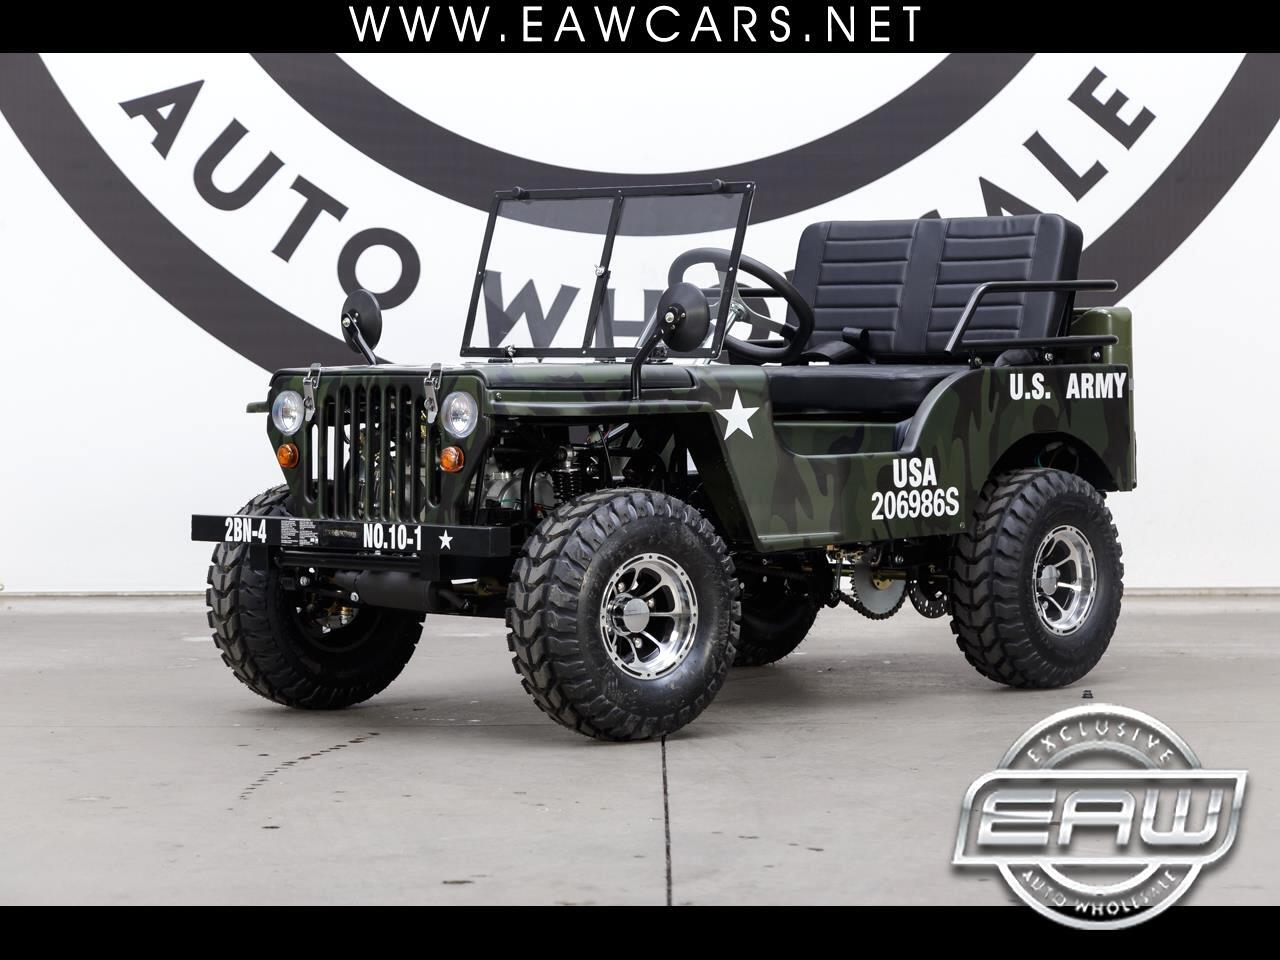 2019 Ice Bear PAZ125-1 CAMO ARMY JEEP